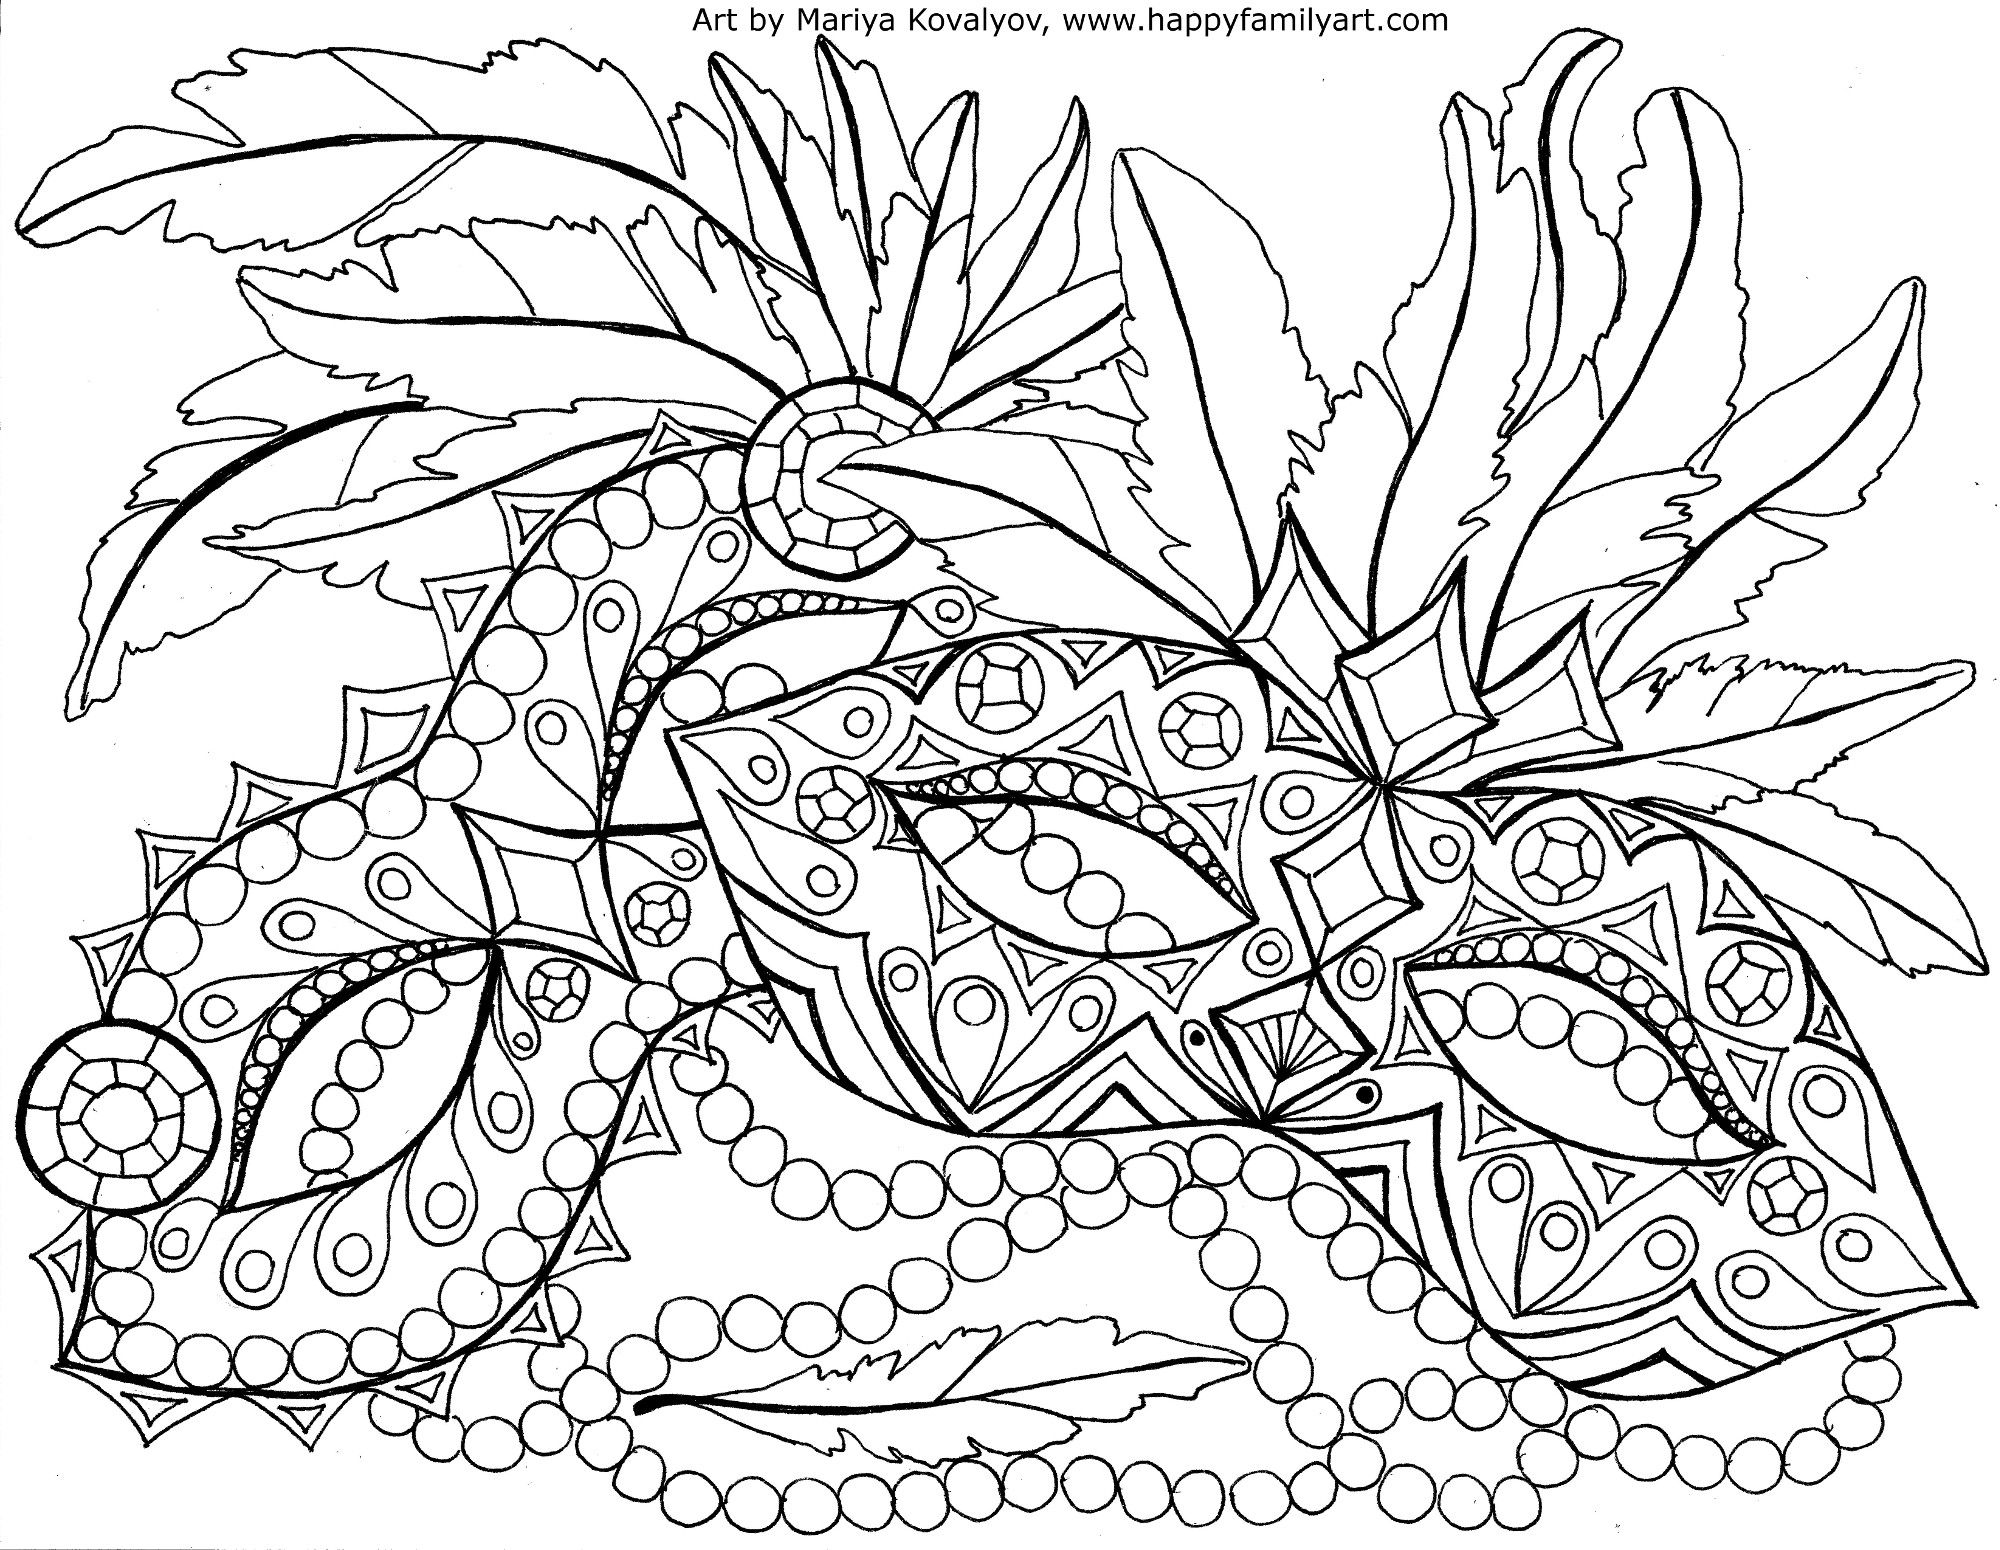 Coloring Pages Mardi Gras Color Pages comedy tragedy mask as mardi gras symbol coloring page masquerade colouring for adults